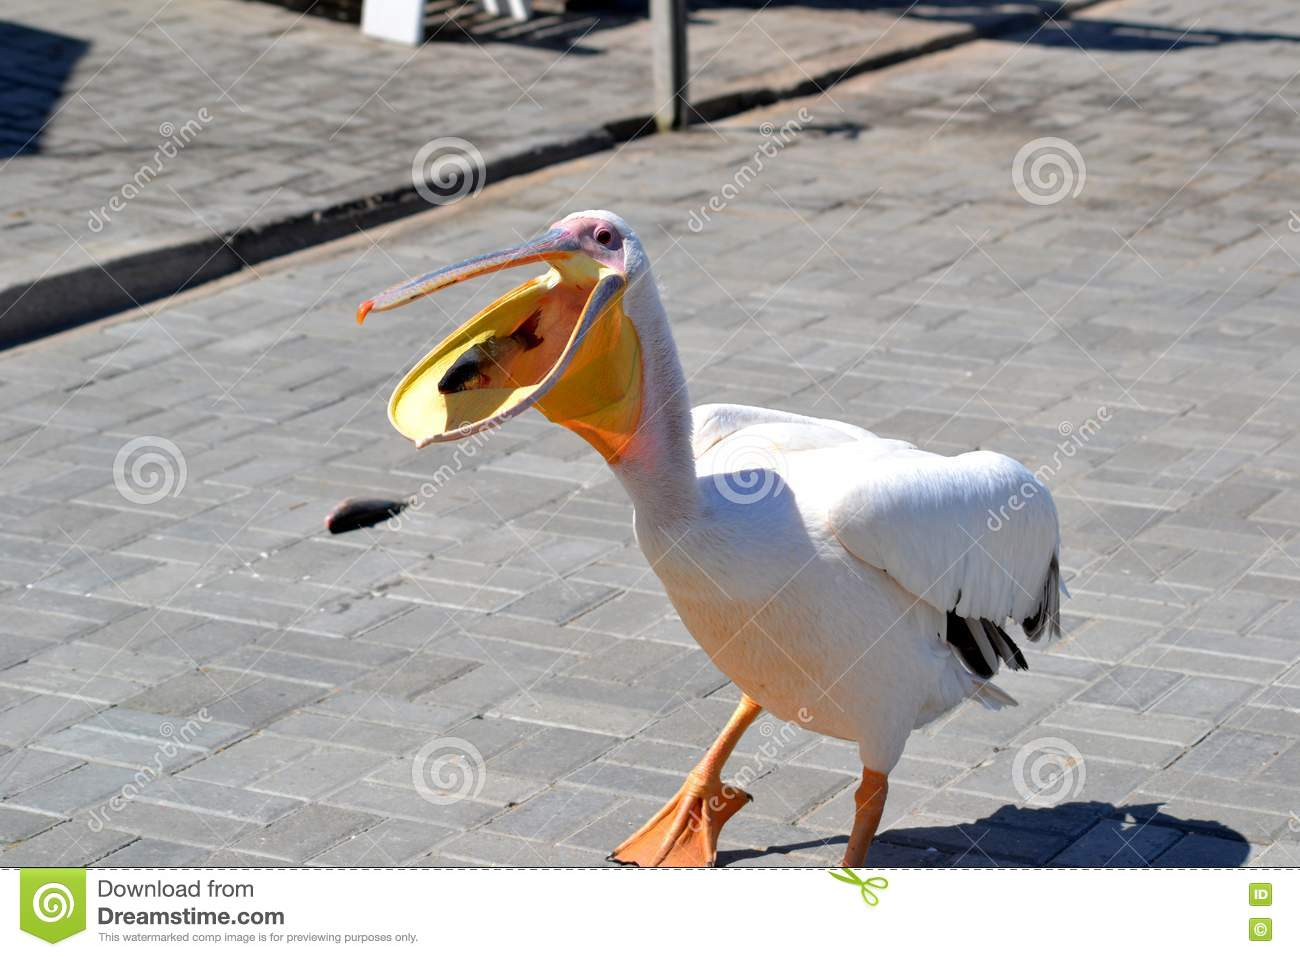 Pelican eating fish royalty free stock photo image 17693365 for Dreaming of eating fish